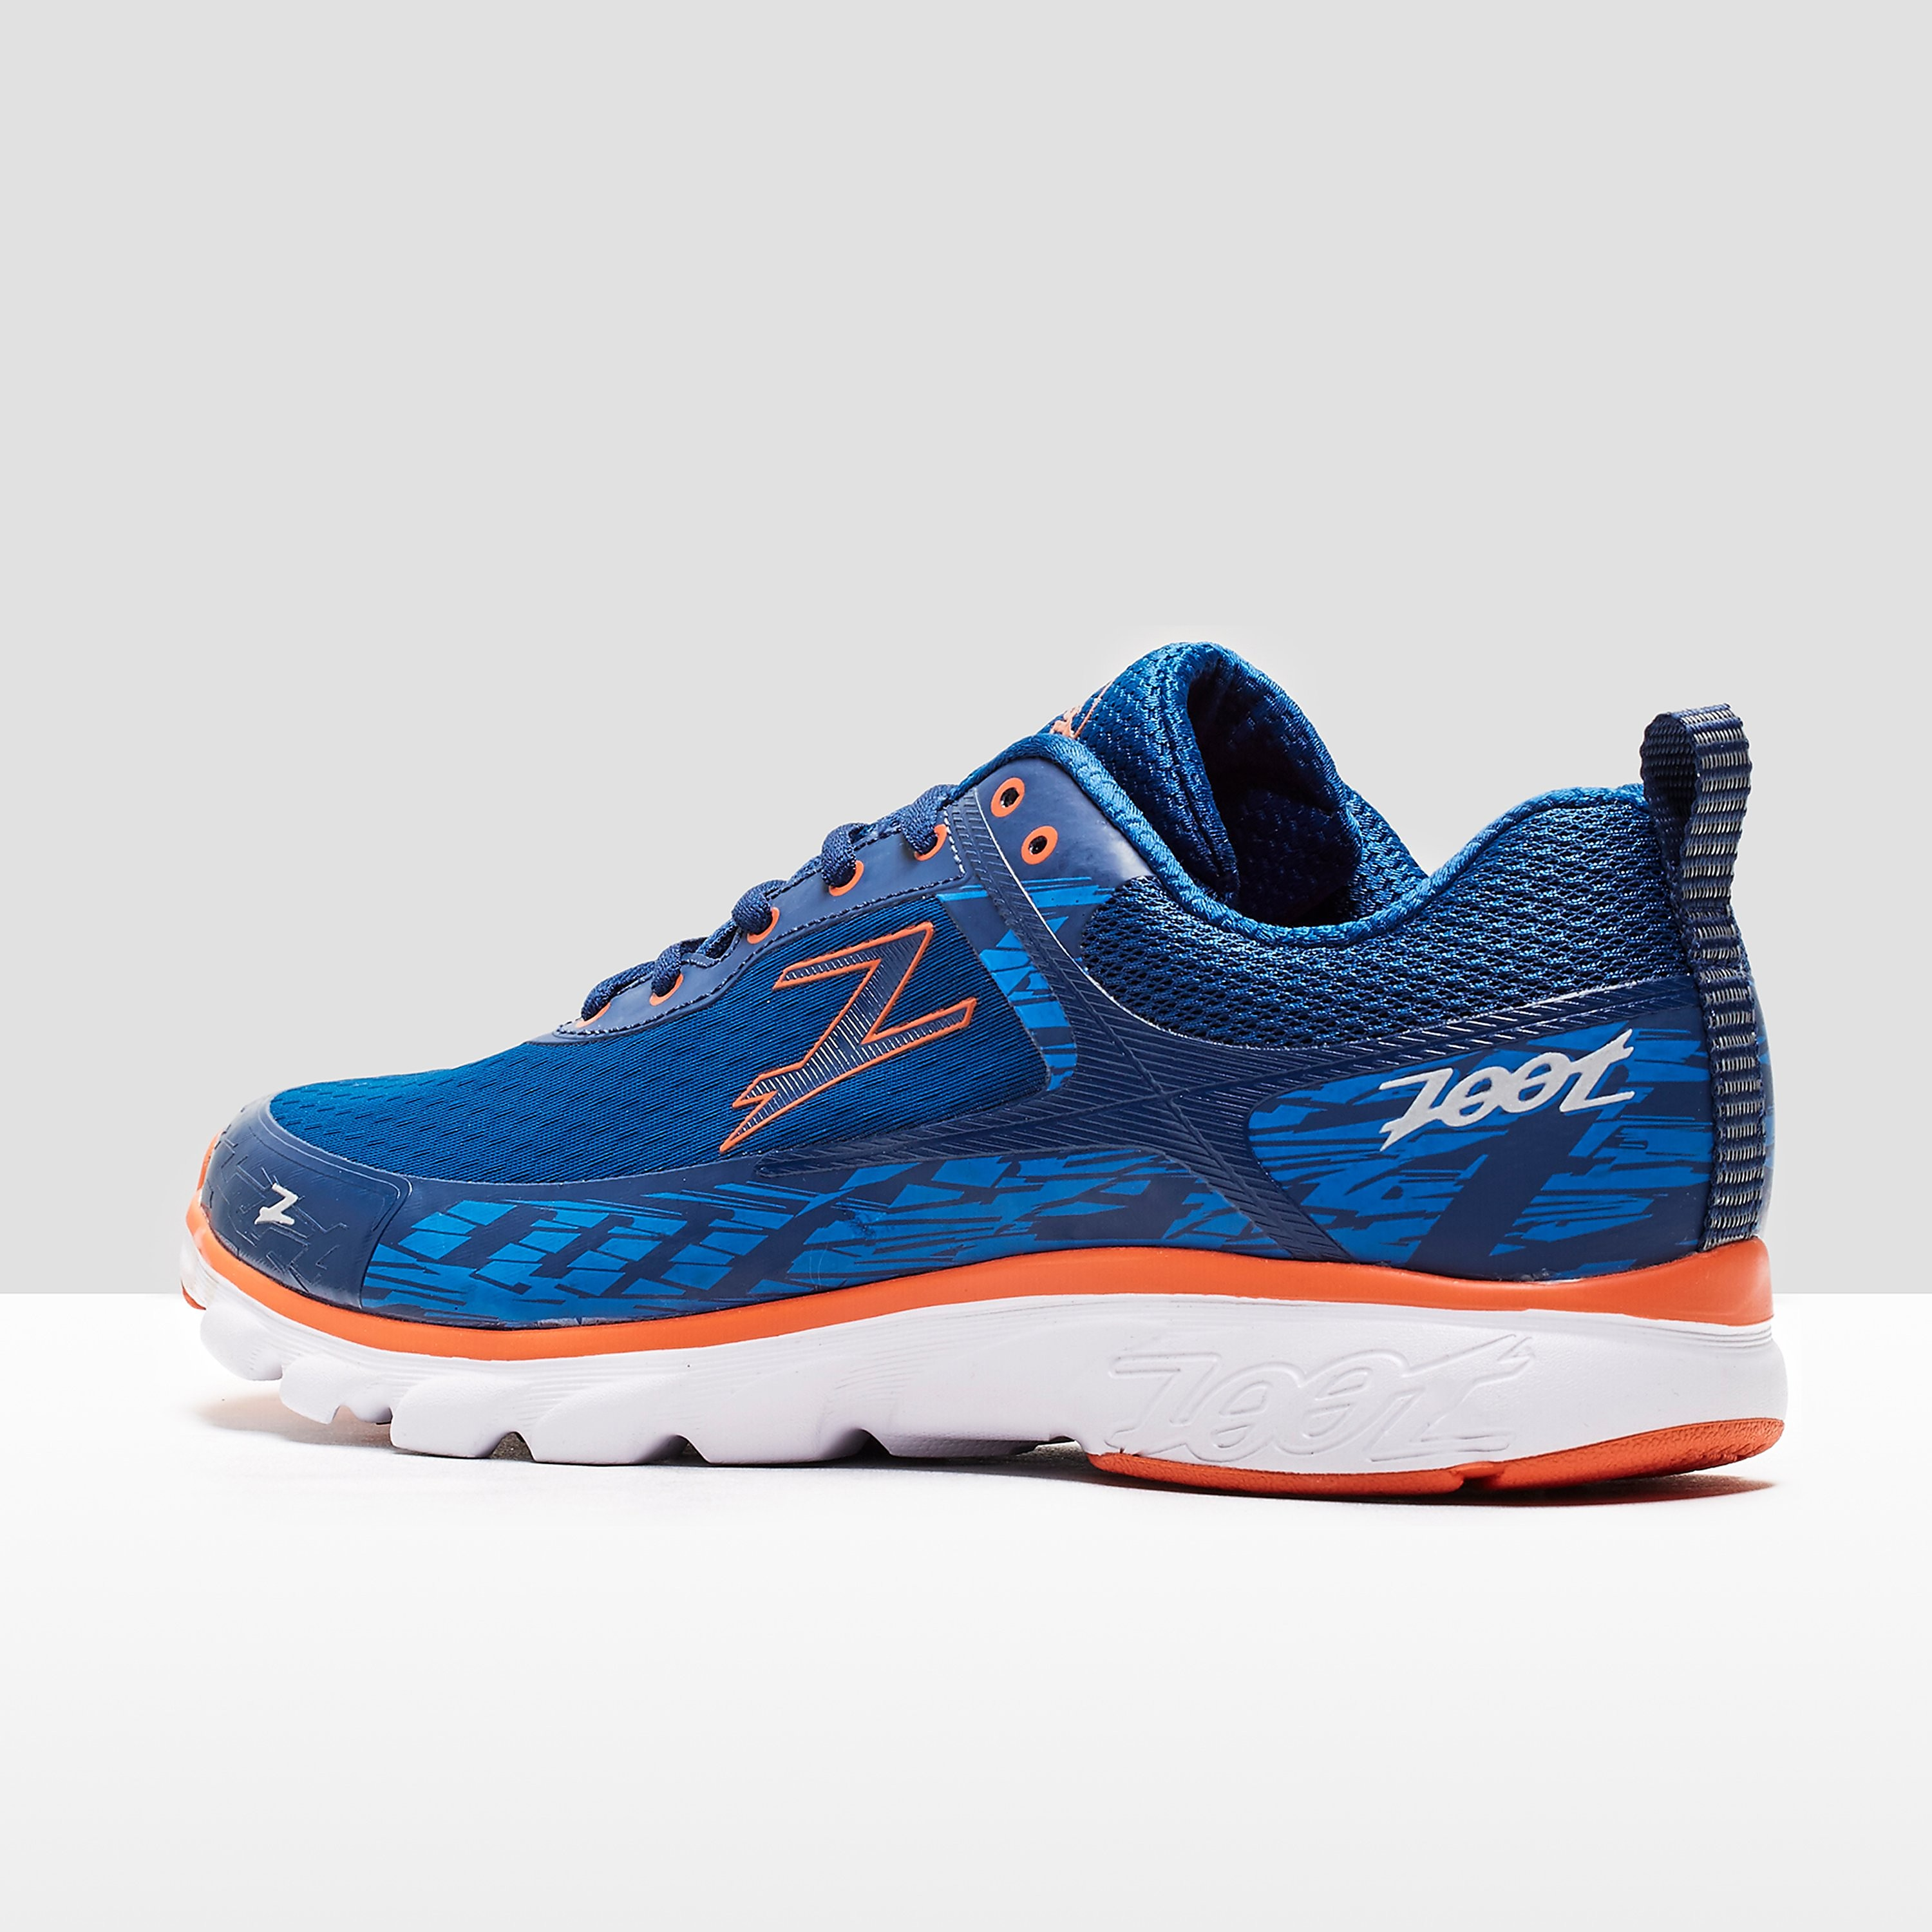 Zoot Solana Men's Running Shoe